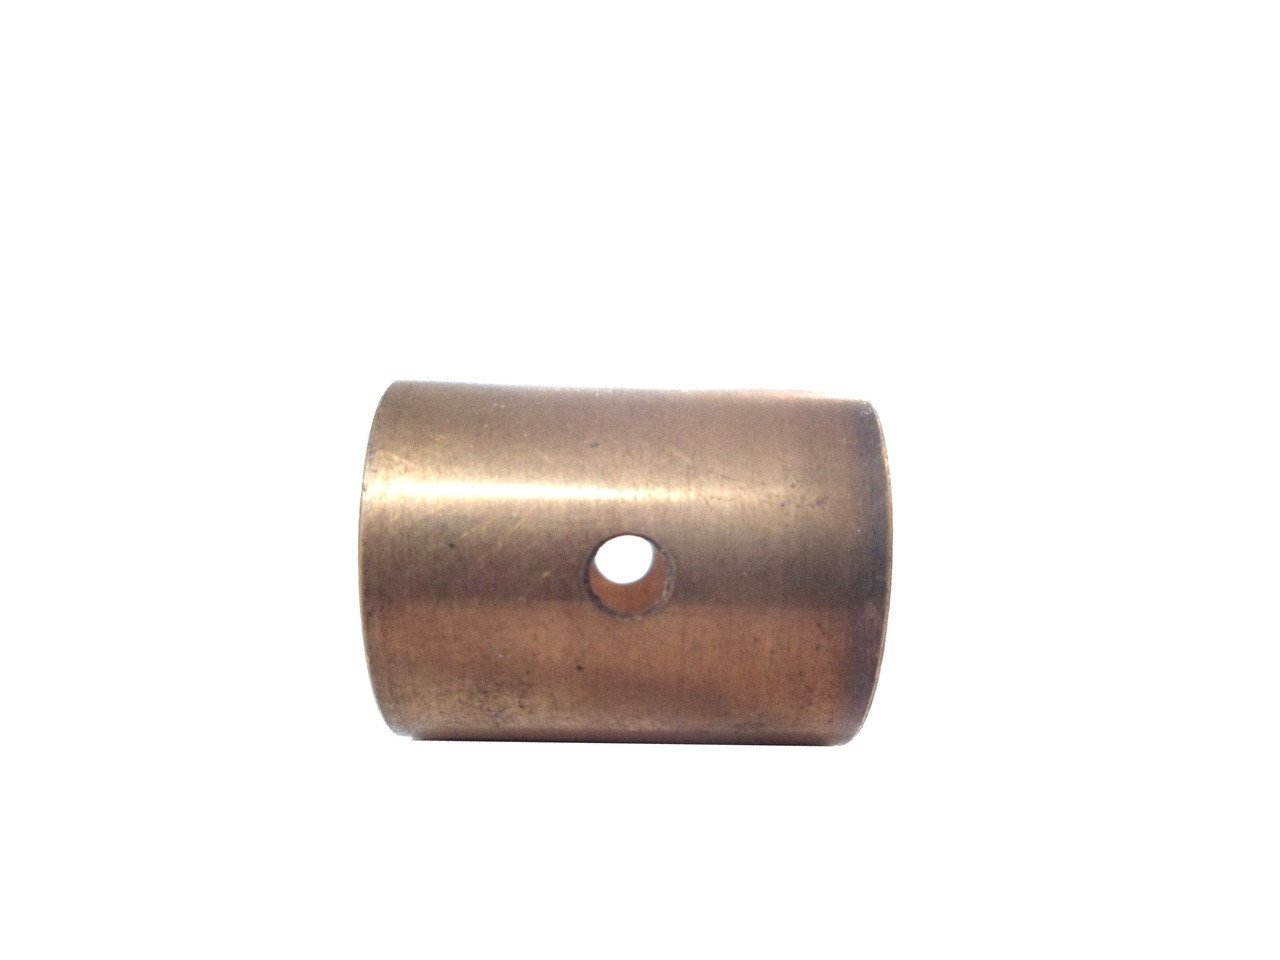 Puch E50 One Speed Moped Clutch Bushing - 22 x 15 x 17